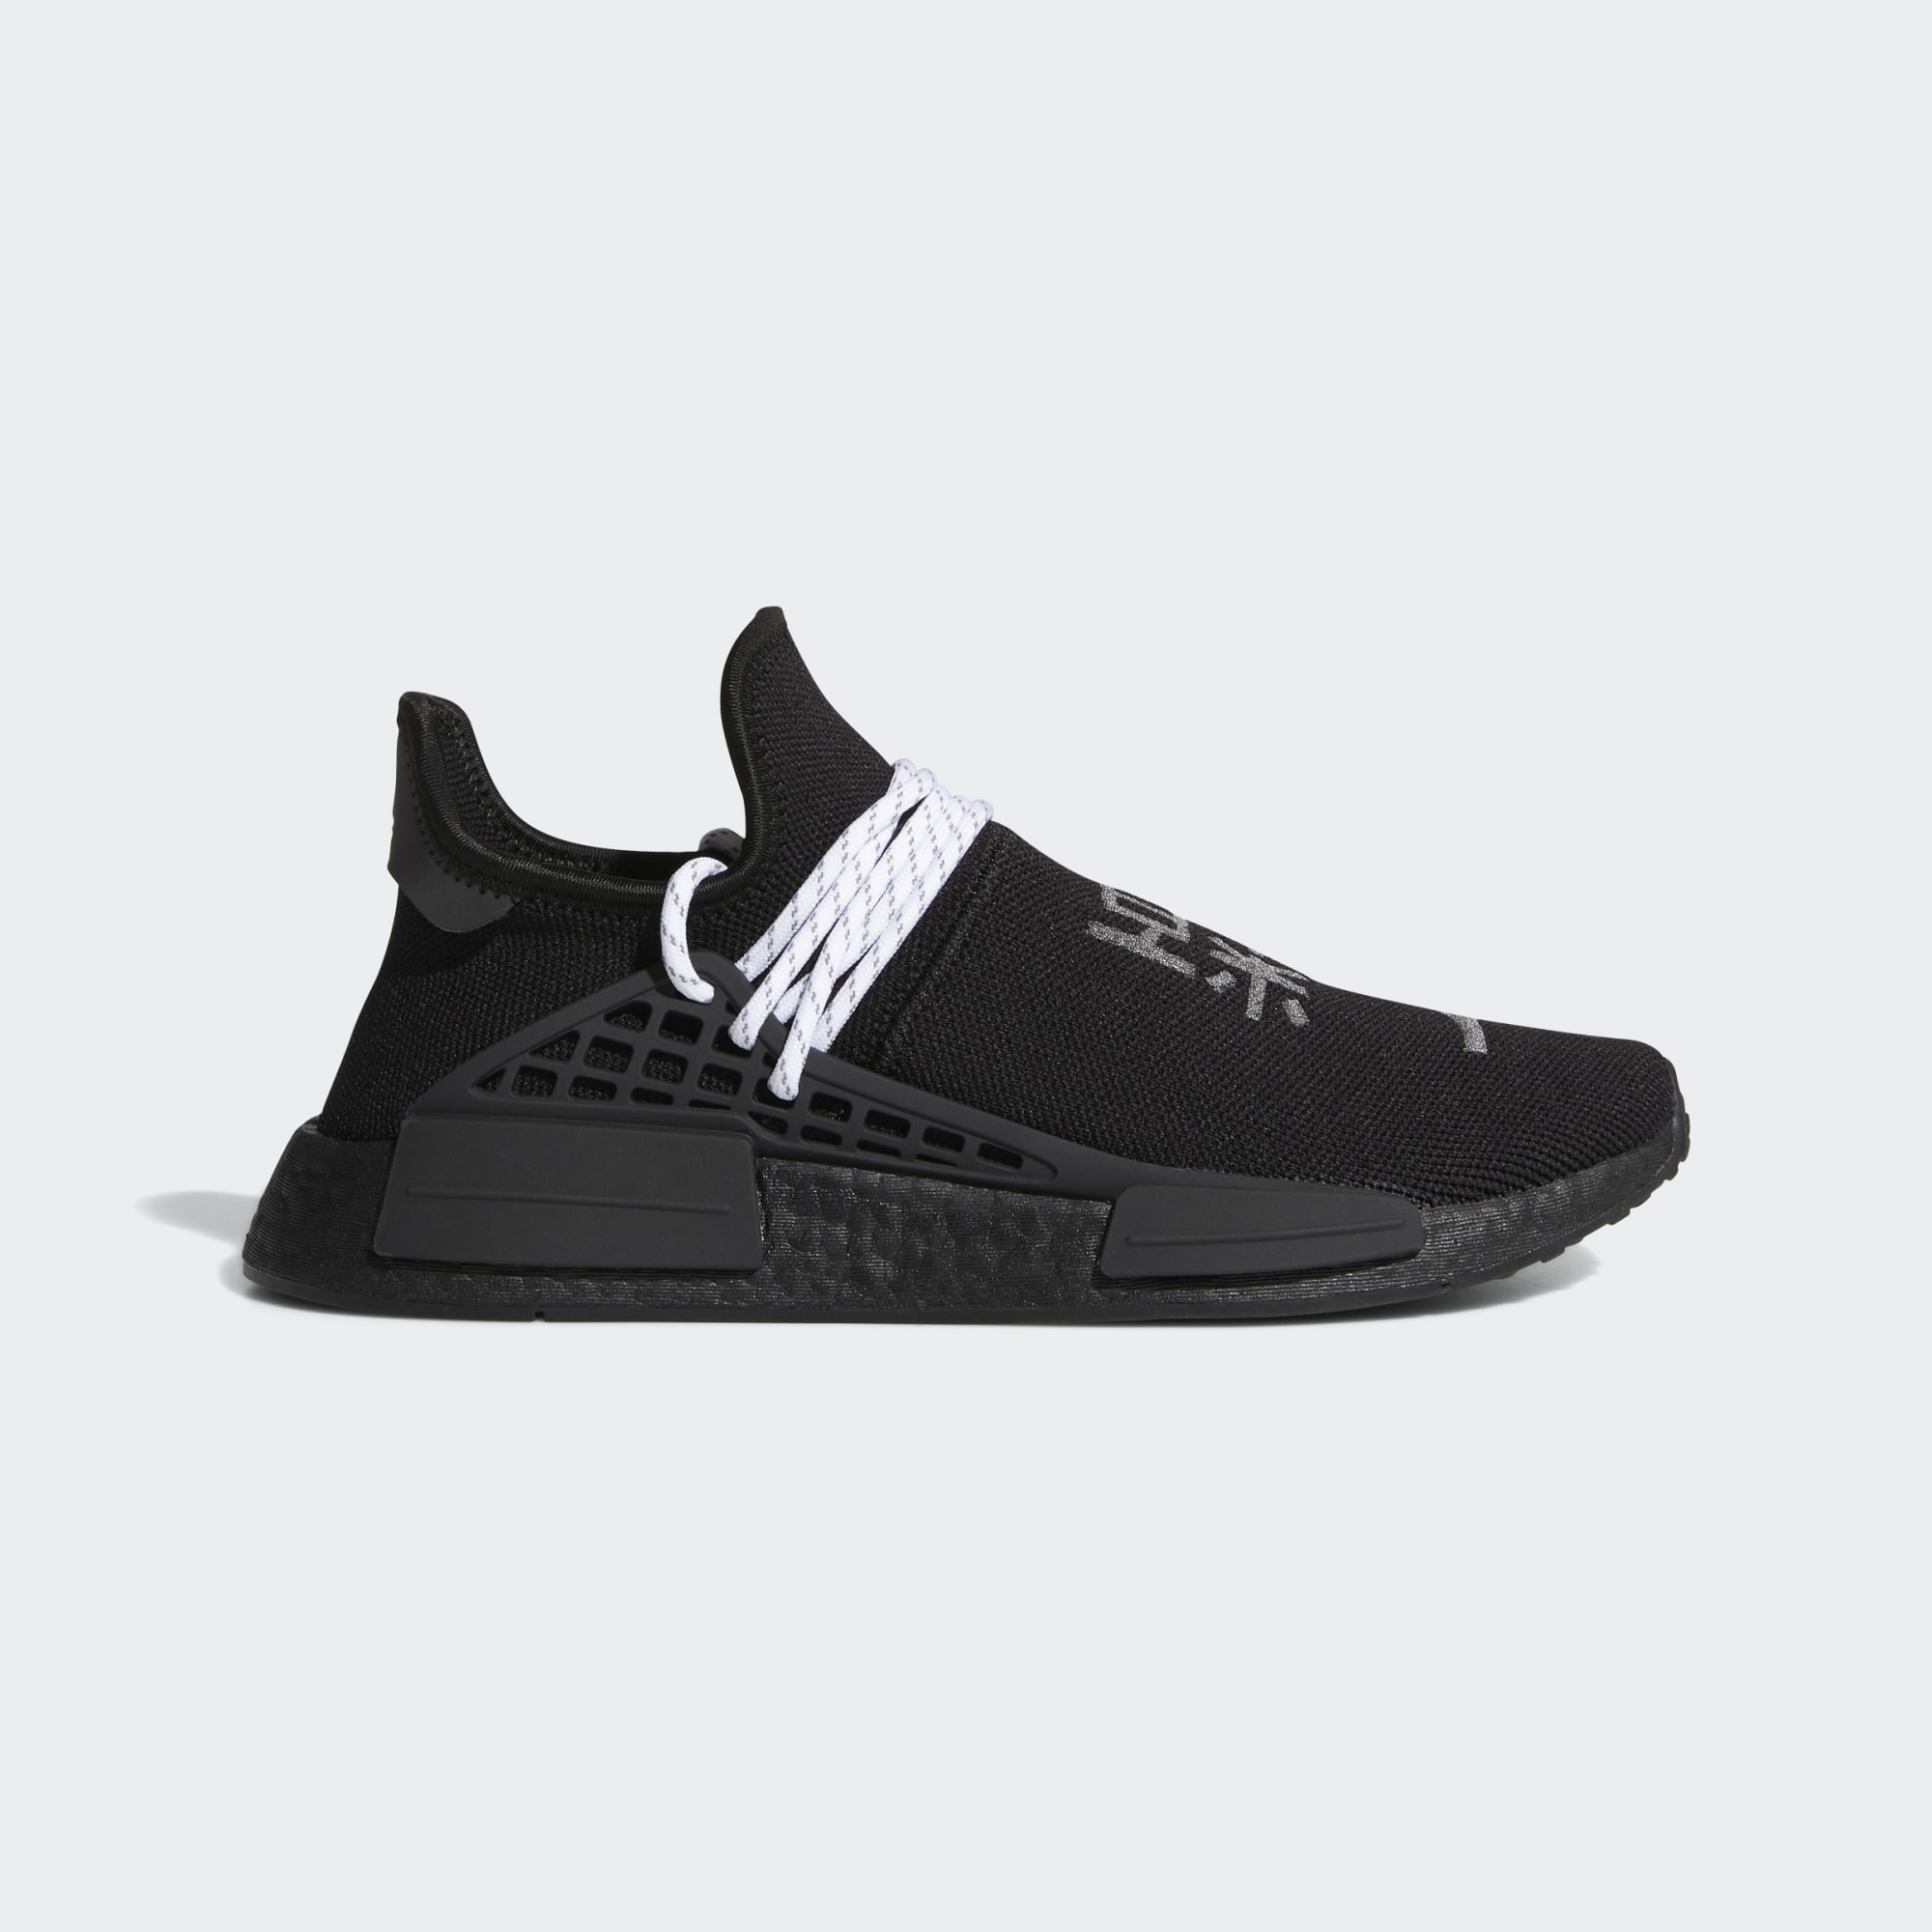 Pharrell Williams x adidas Originals NMD HU 'Core Black'}